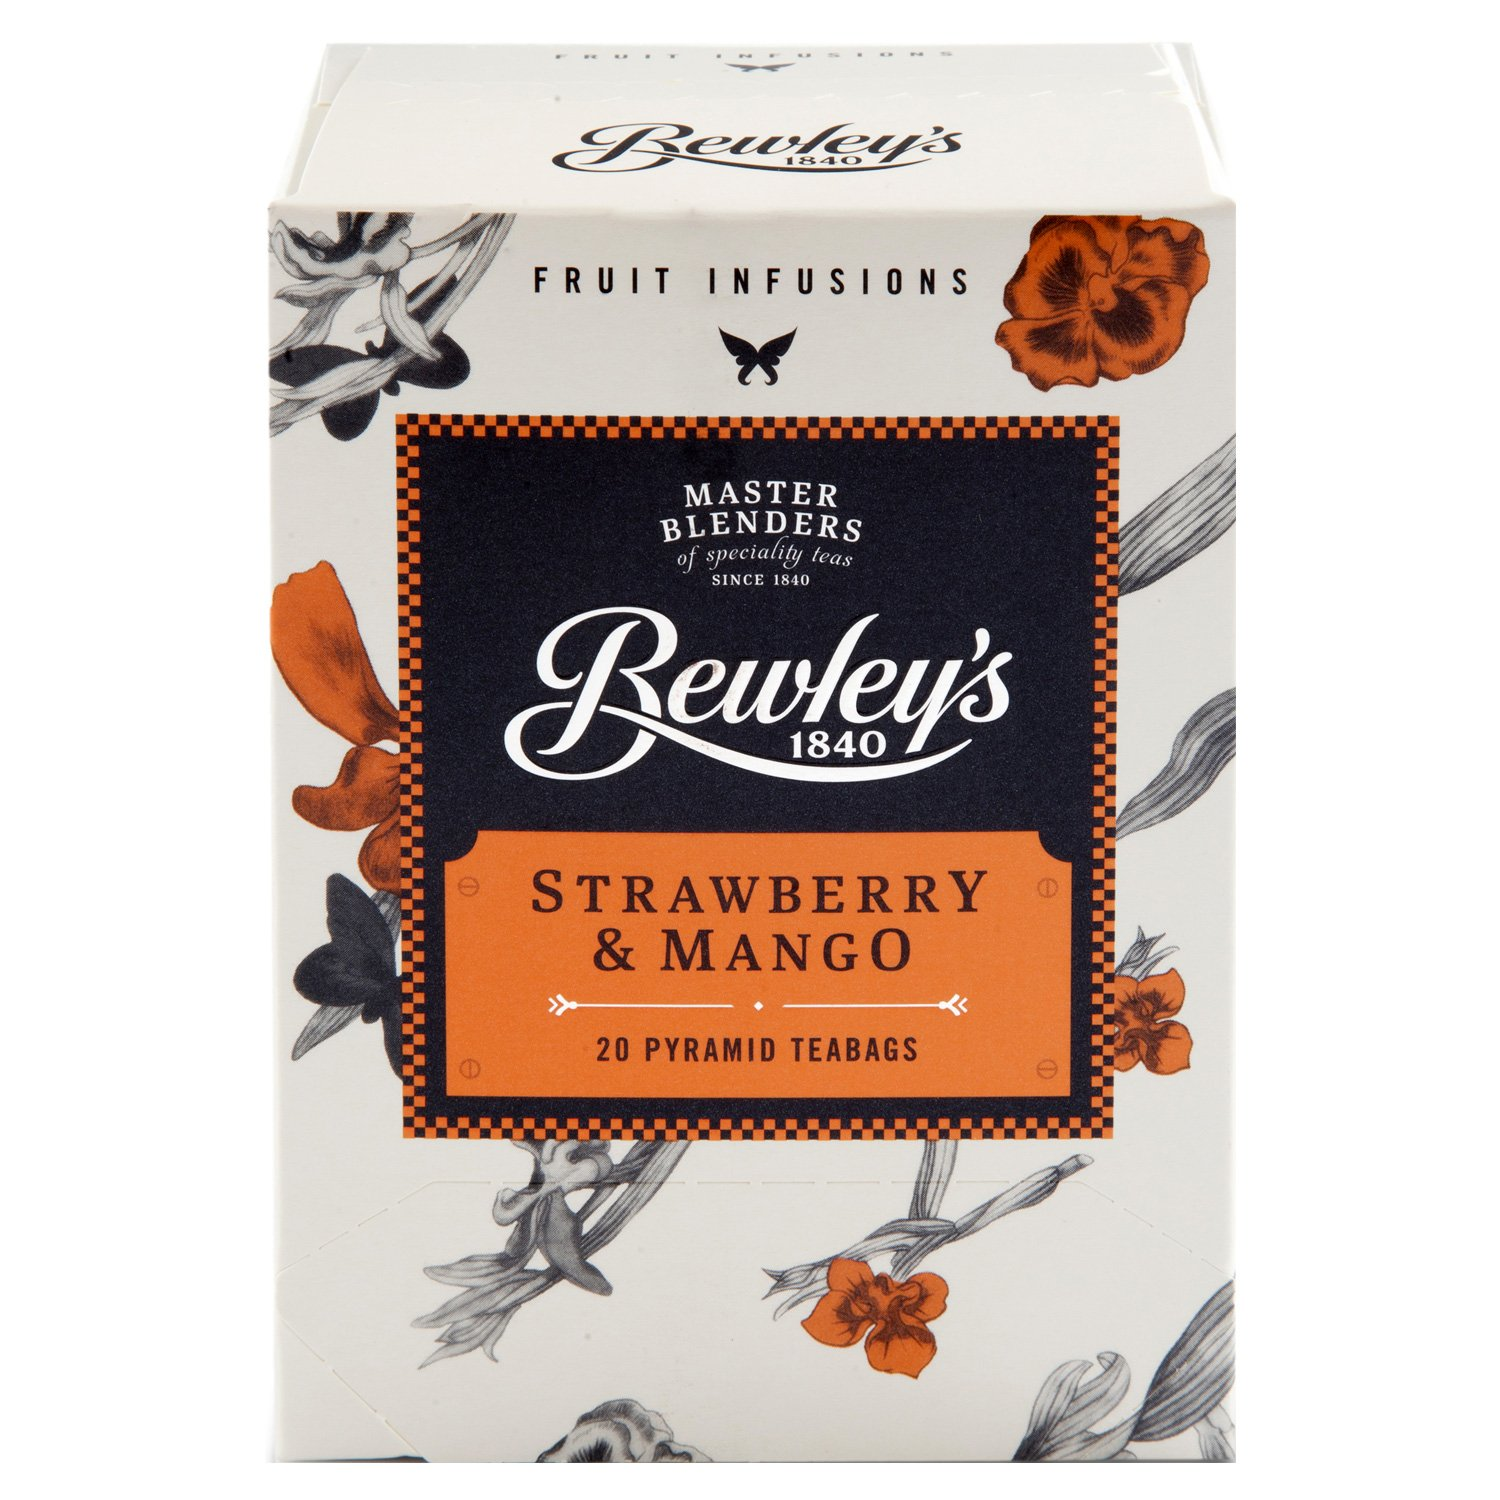 Bewley's Strawberry & Mango Pyramid Teabags